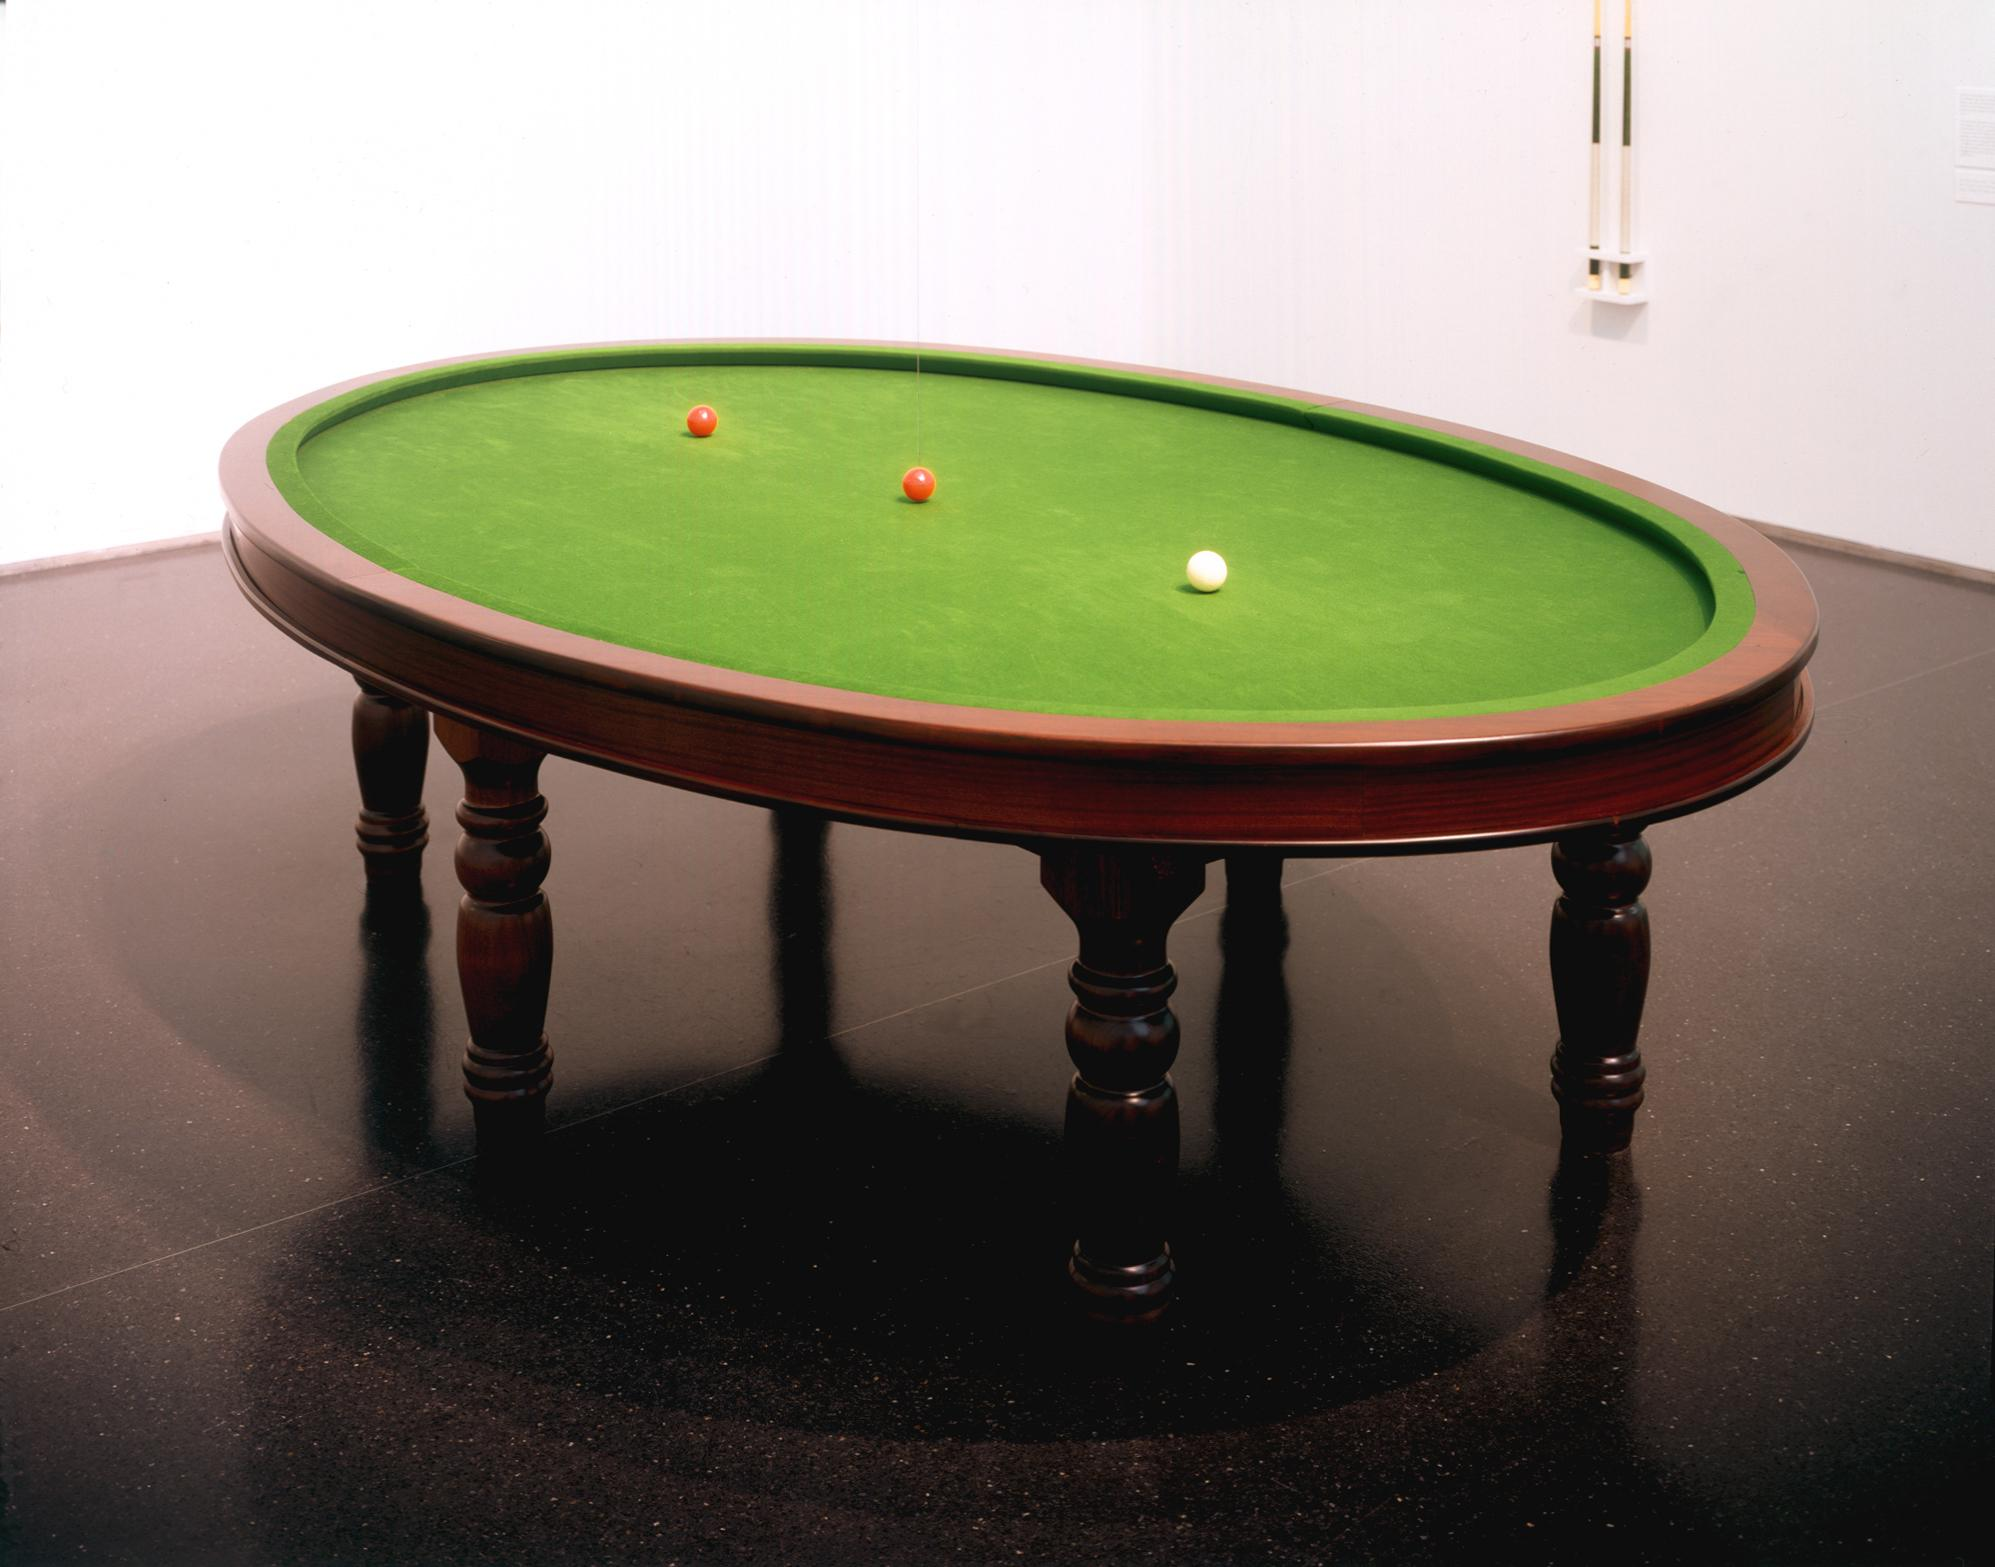 An oval pool table with three billiard balls sitting in a line on the surface